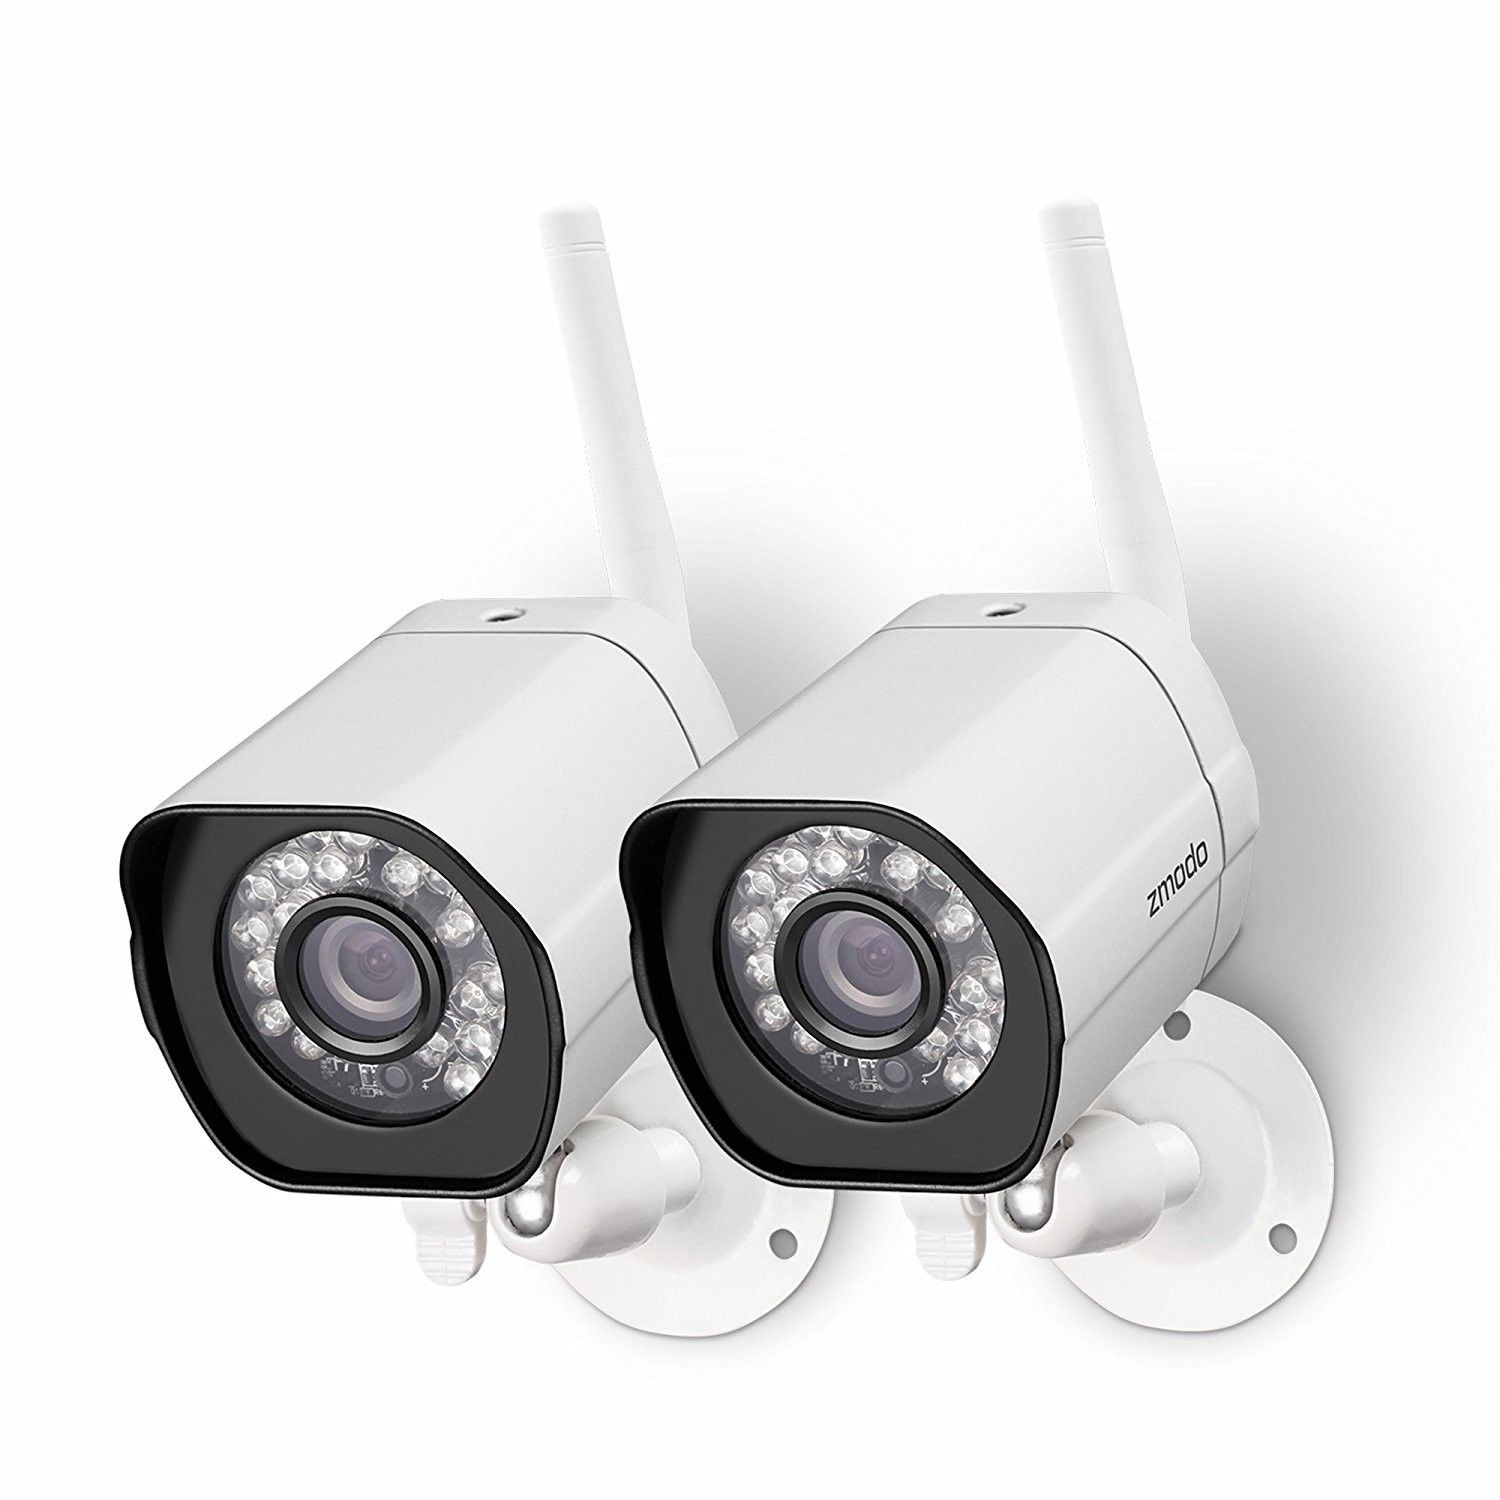 Zmodo Wireless Security Camera System (2 pack) Smart HD Outdoor WiFi IP Camer...